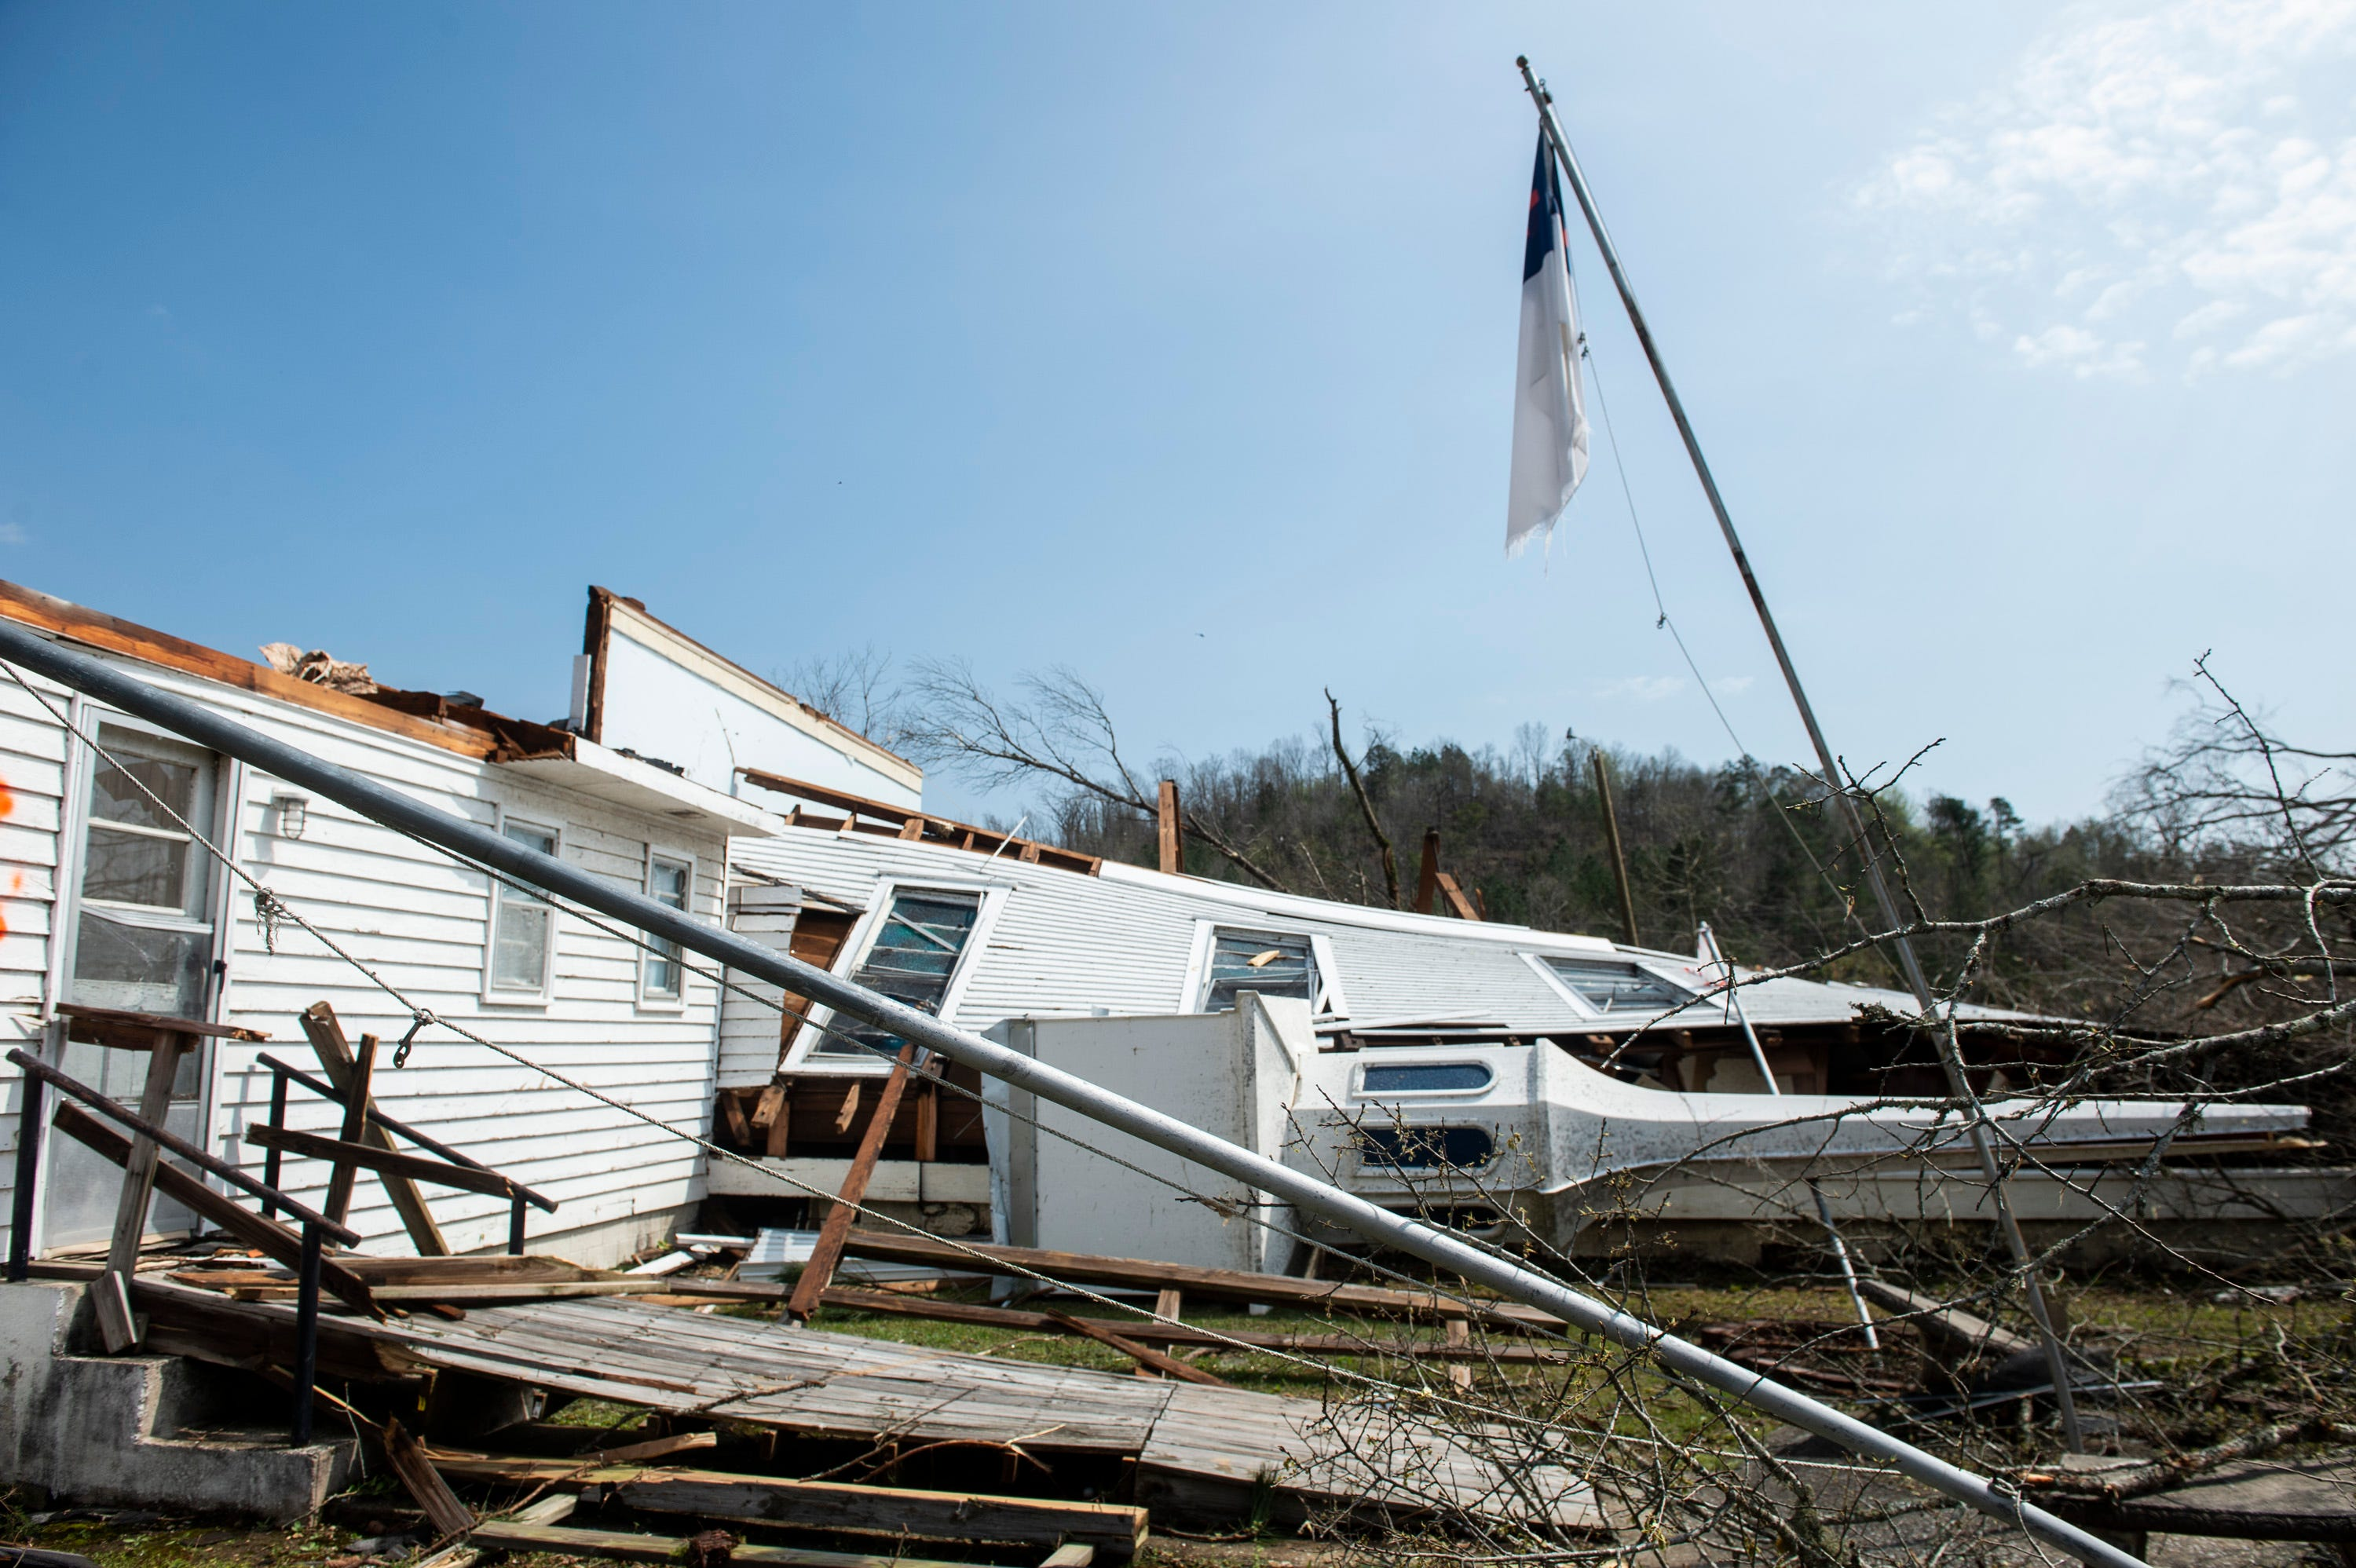 Tornado warning: Twisters are hitting more frequently and dealing more deaths in the South